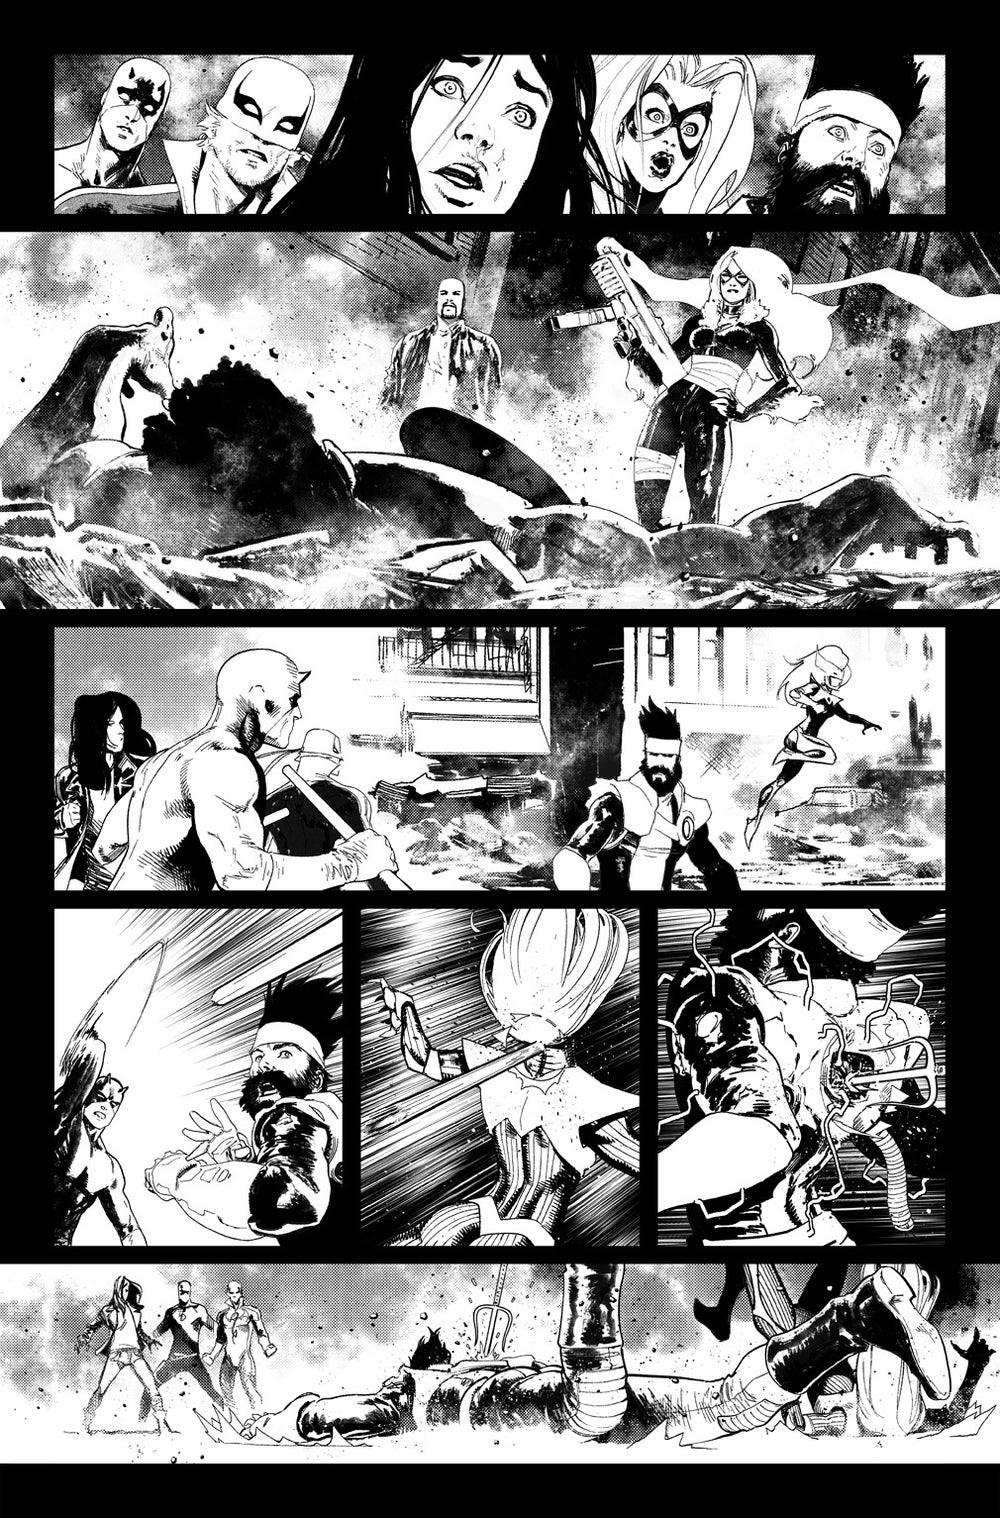 Image of DEFENDERS #9, p.19 ARTIST'S PROOF